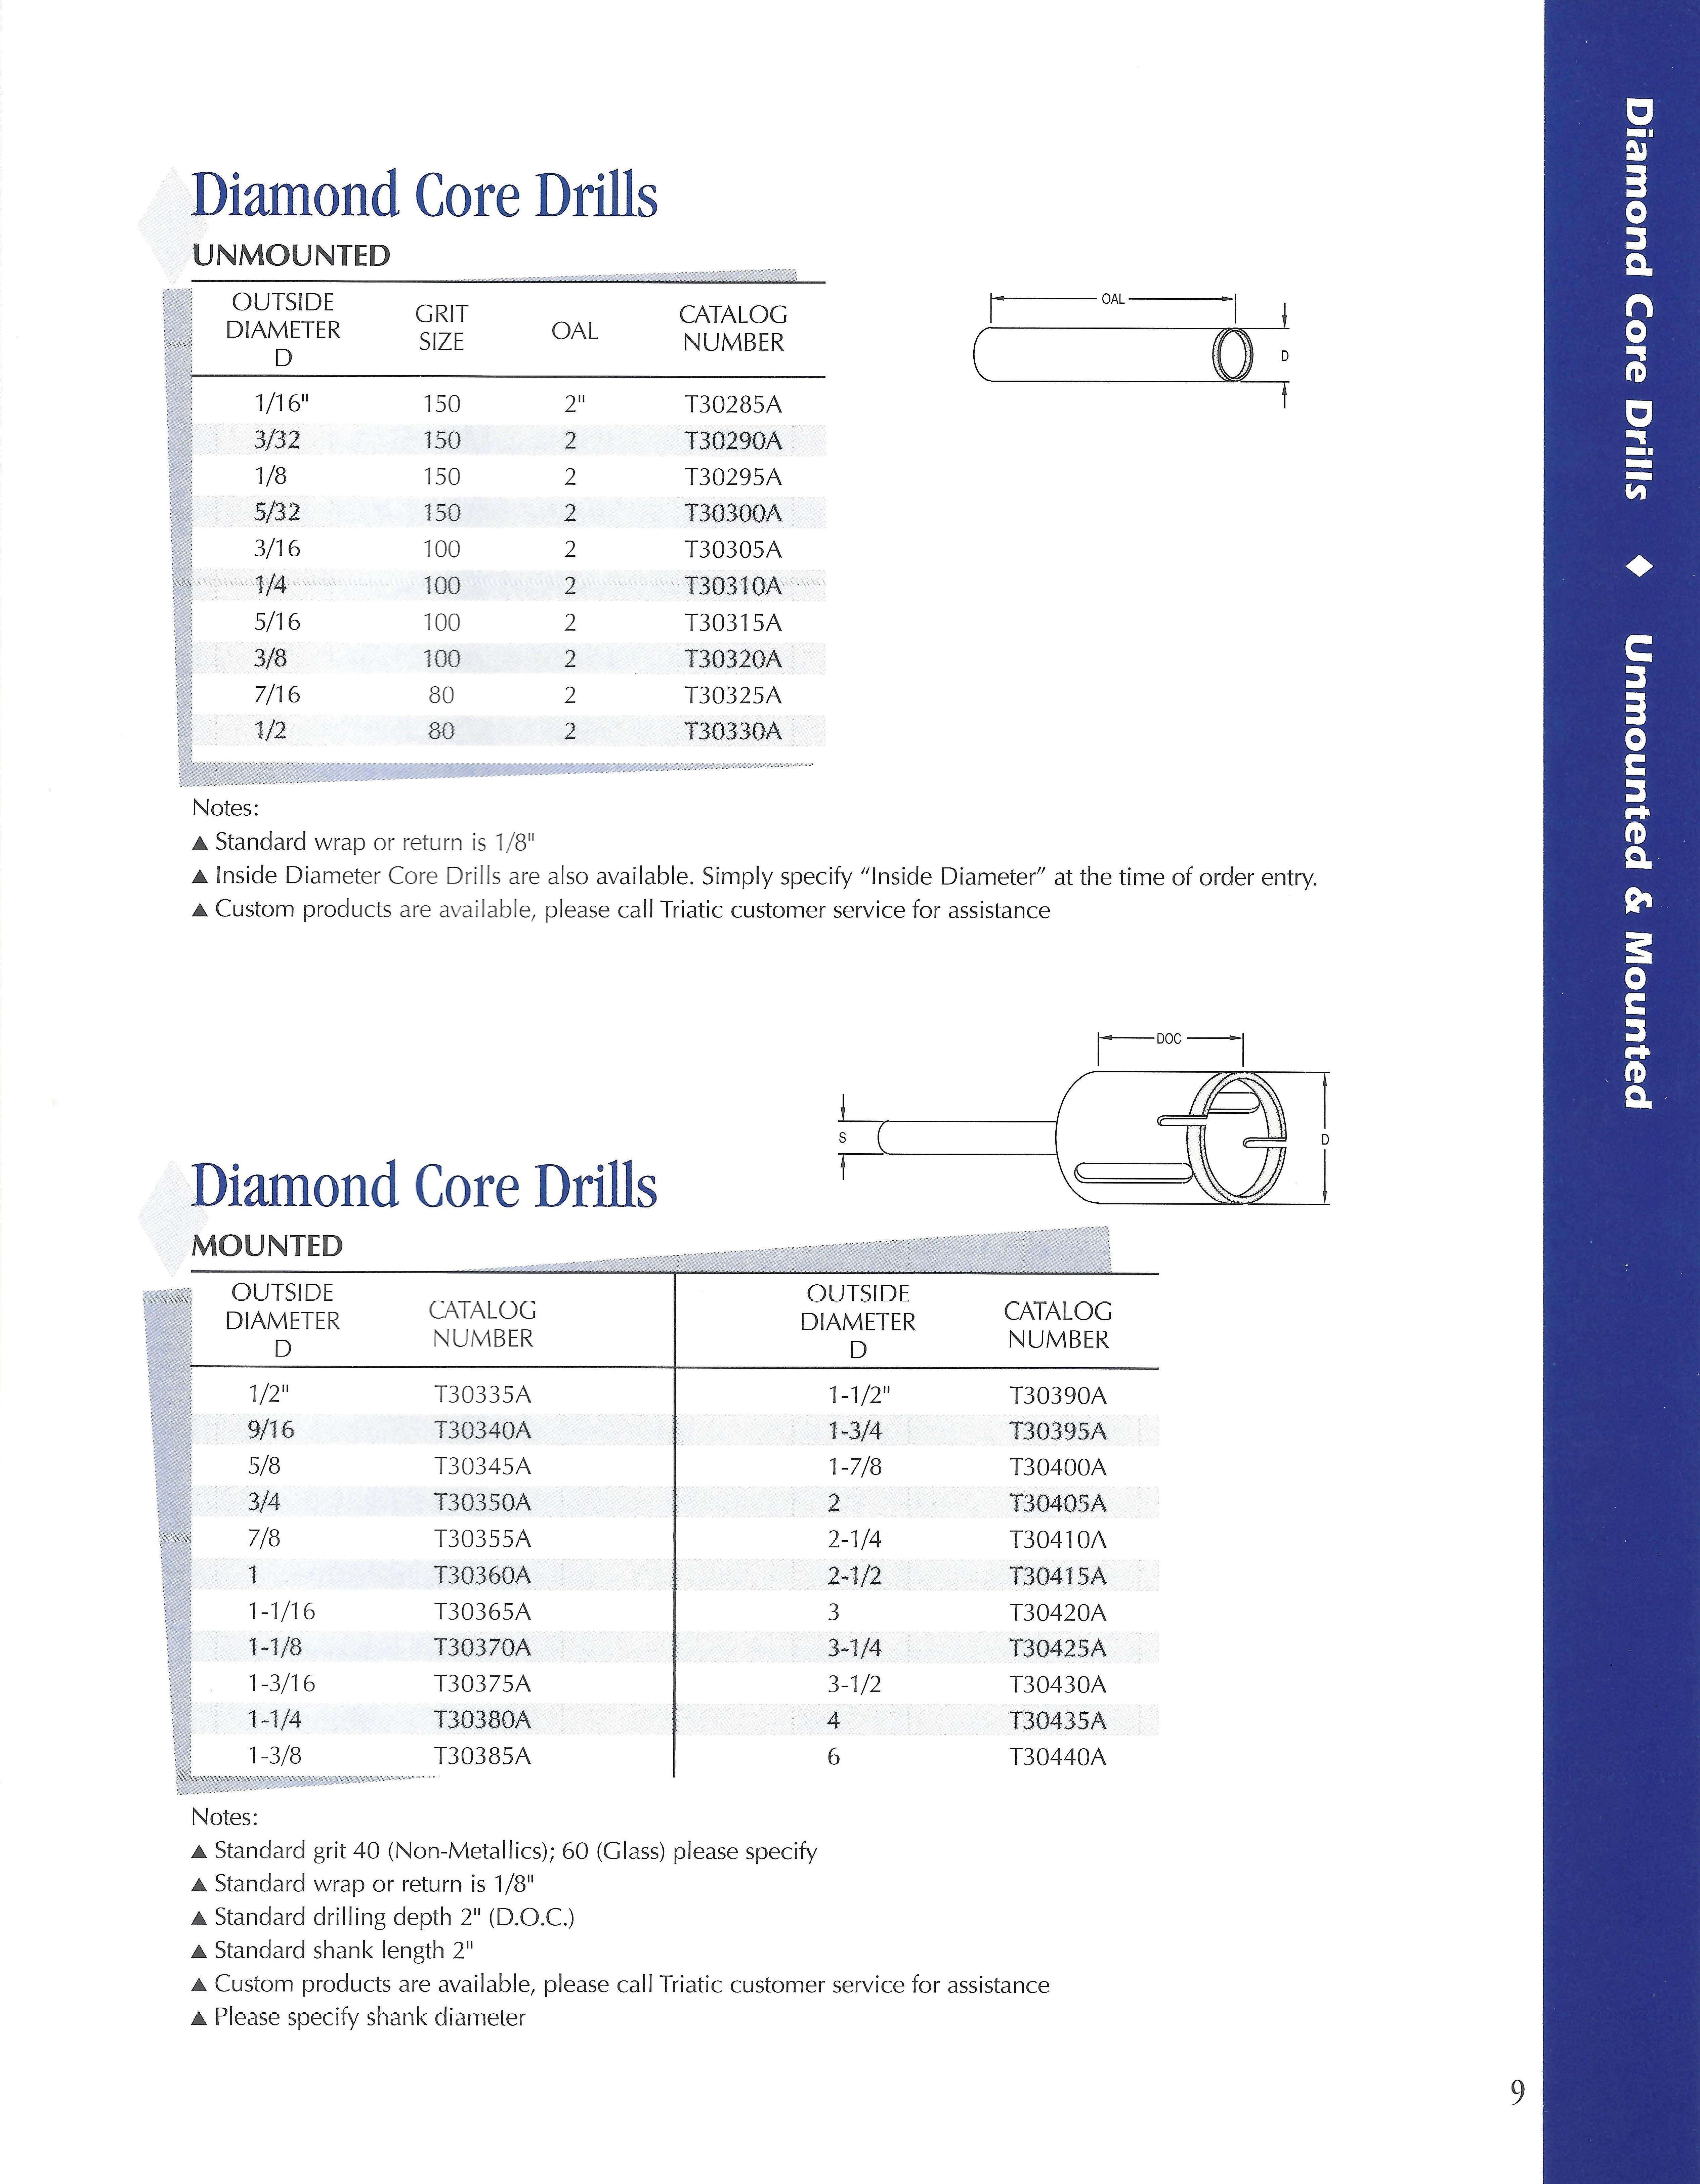 catalog-in-pdf-combined-page-09-image-0001.jpg